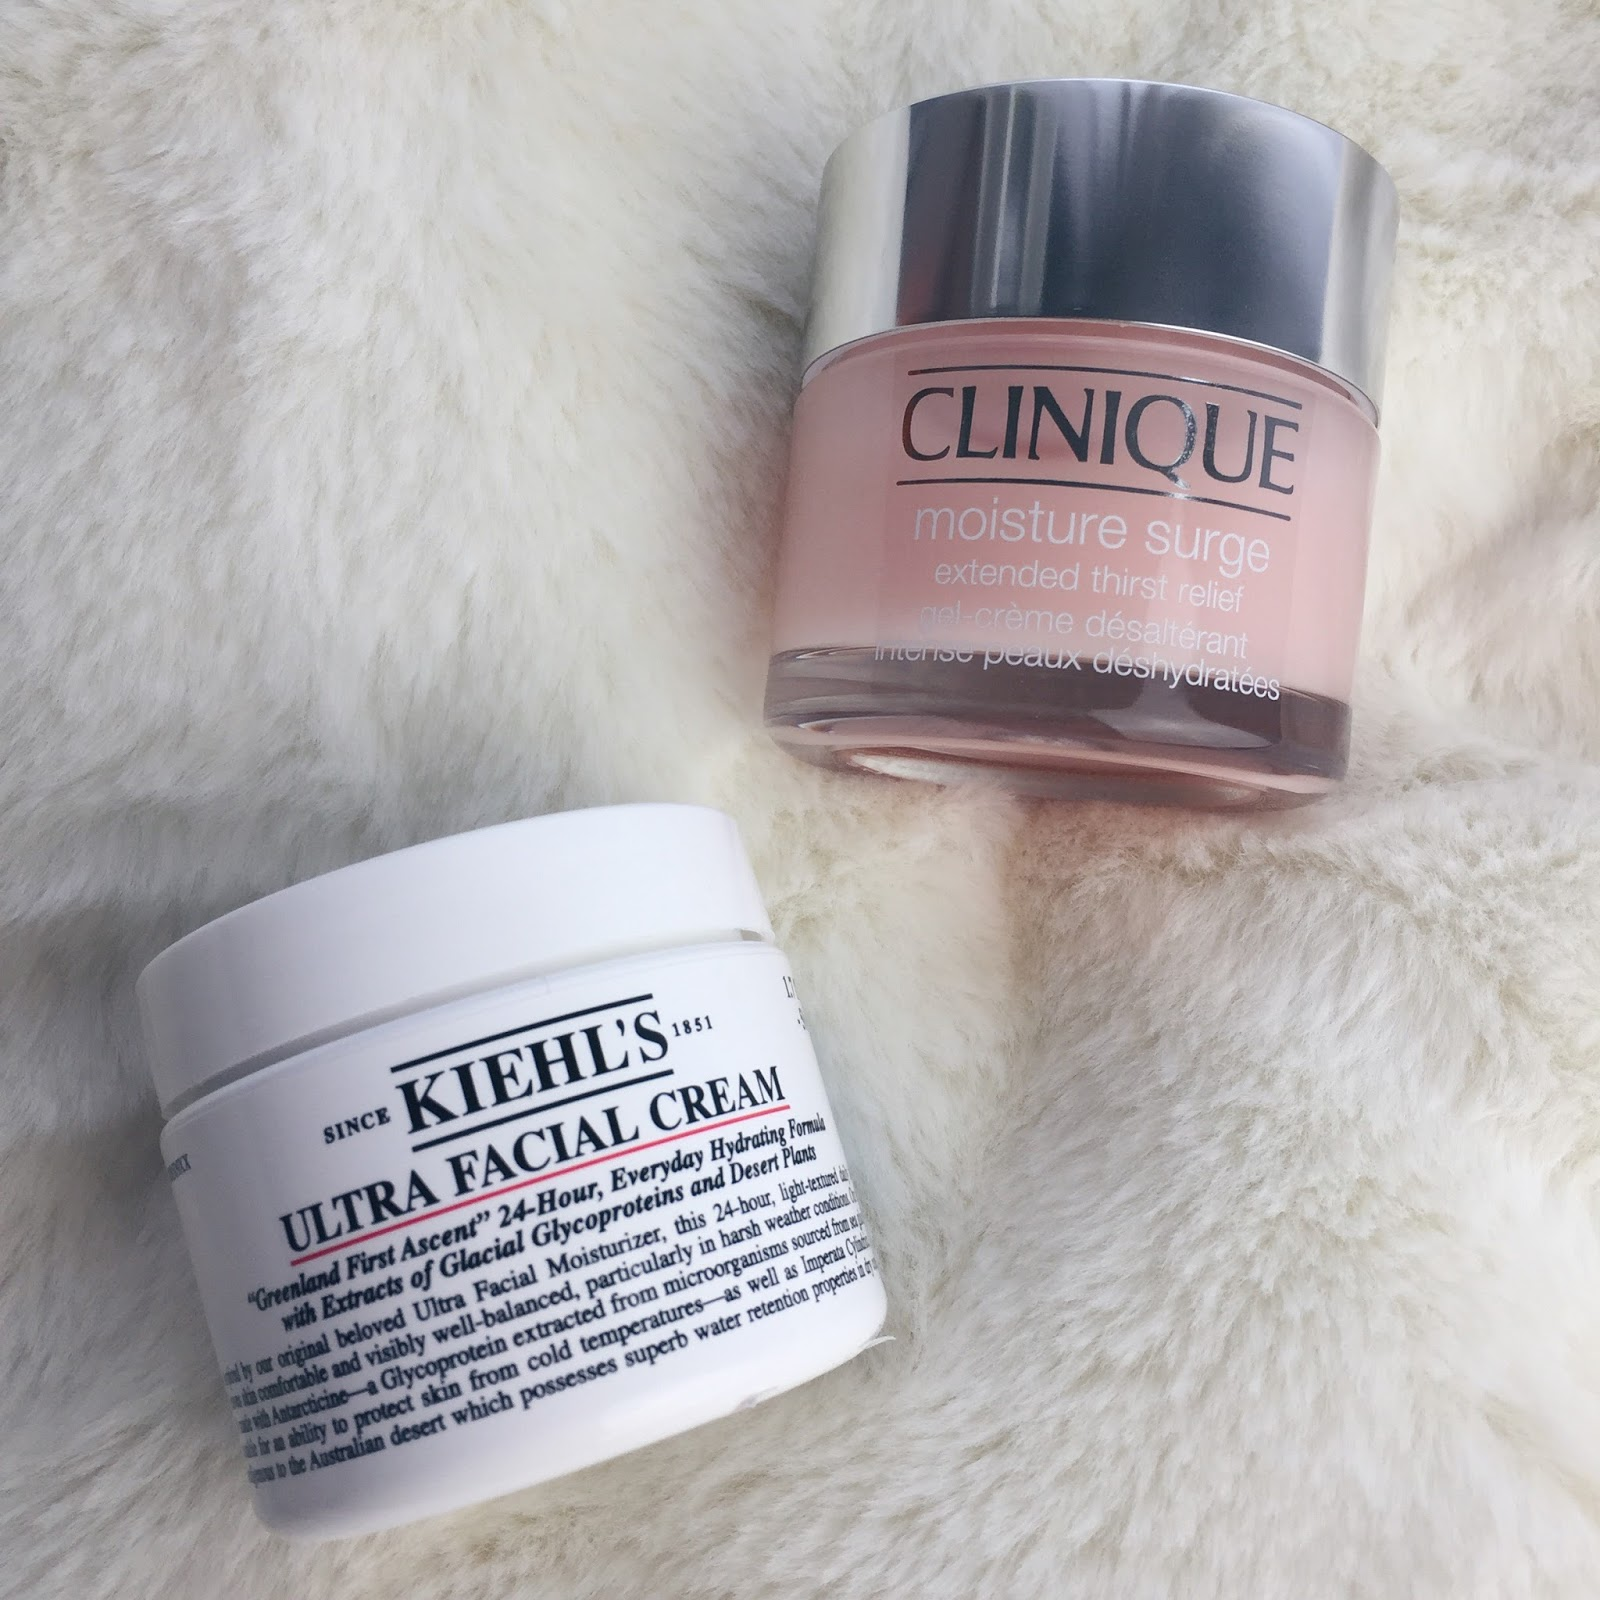 Kiehl's ultra facial cream a Clinique moisture surge extended thirst relief vedle sebe na hebké podložce